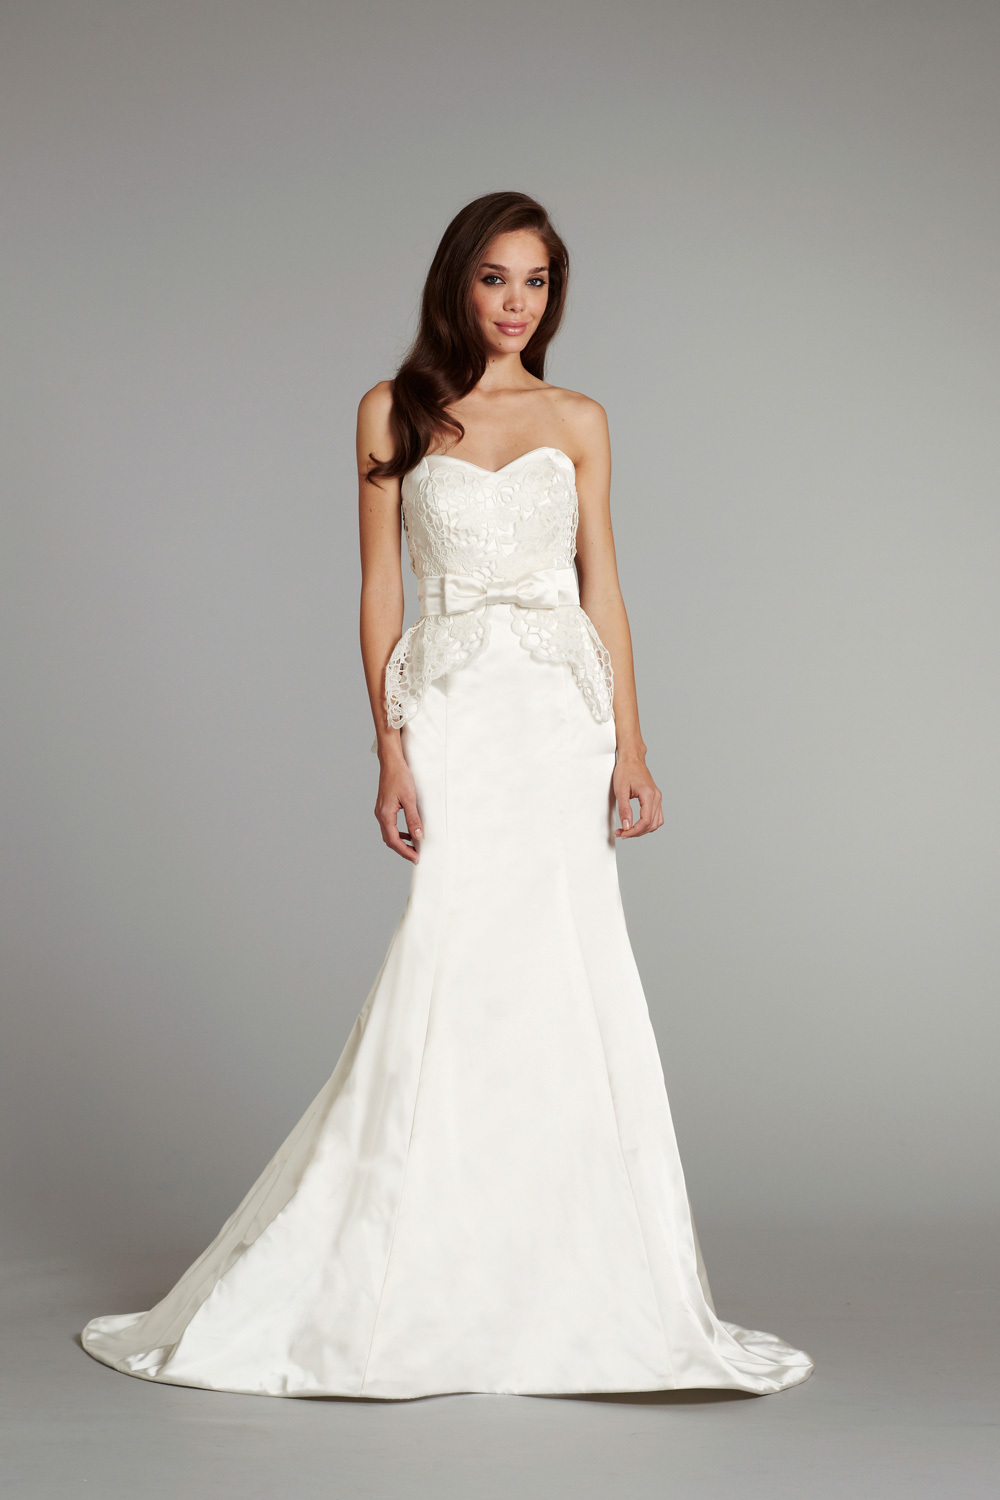 Bridal-gown-wedding-dress-jlm-hayley-paige-fall-2012-sloane-front.full